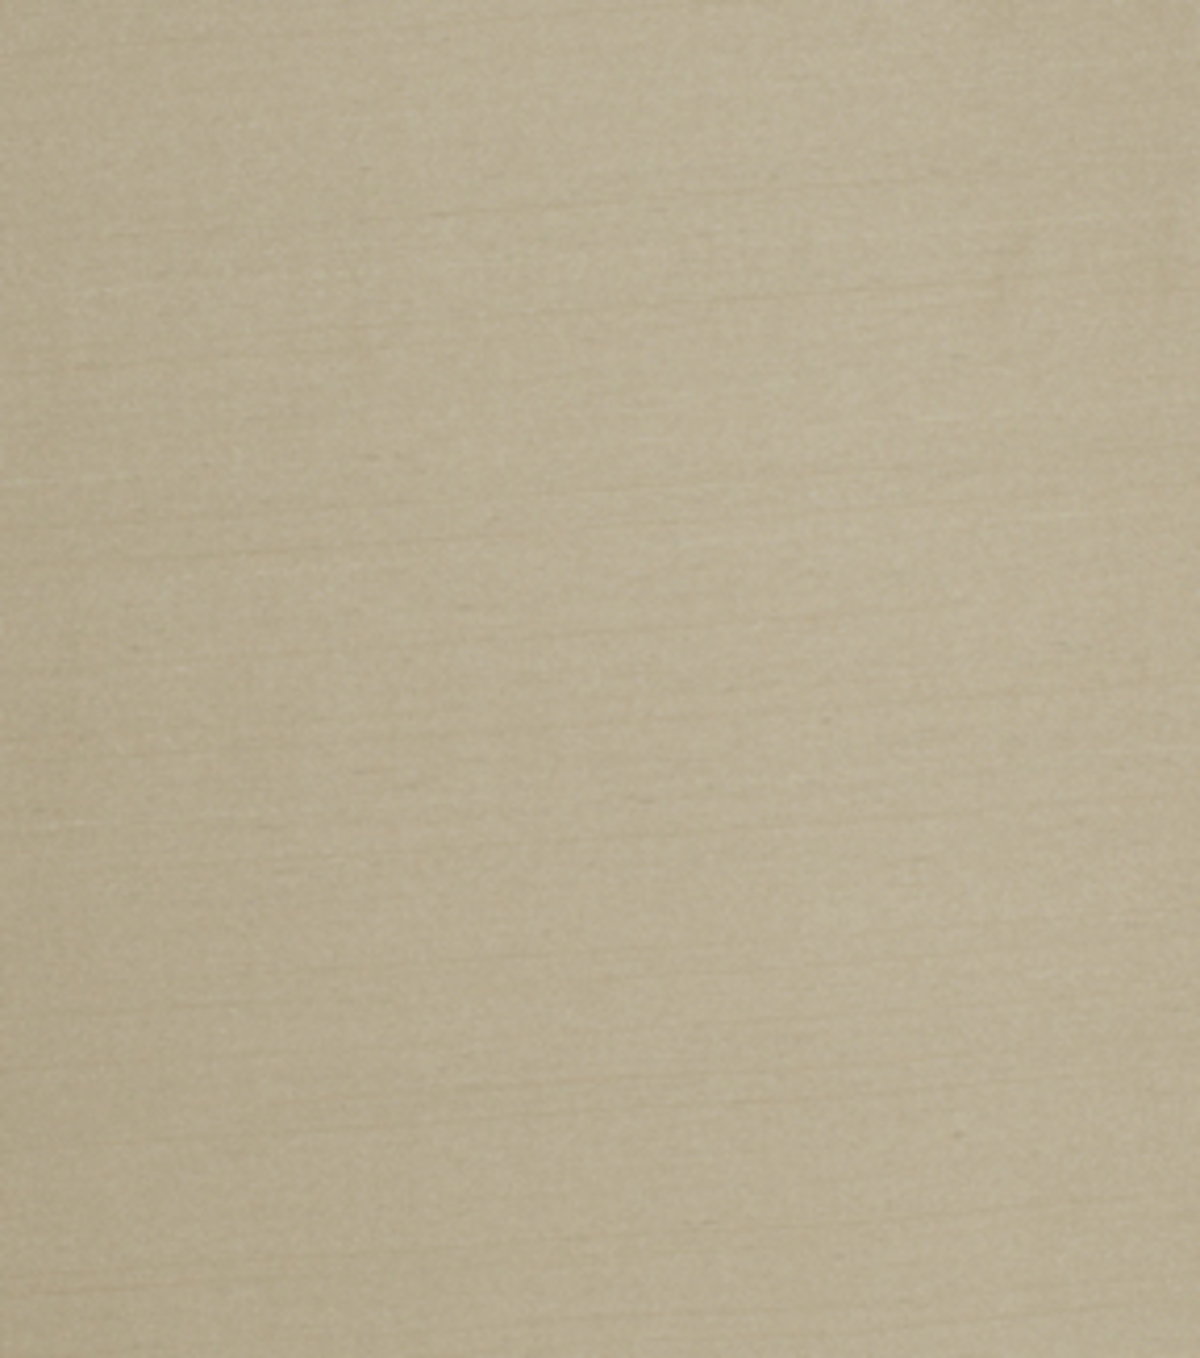 Home Decor 8\u0022x8\u0022 Fabric Swatch-Signature Series Bravo Putty